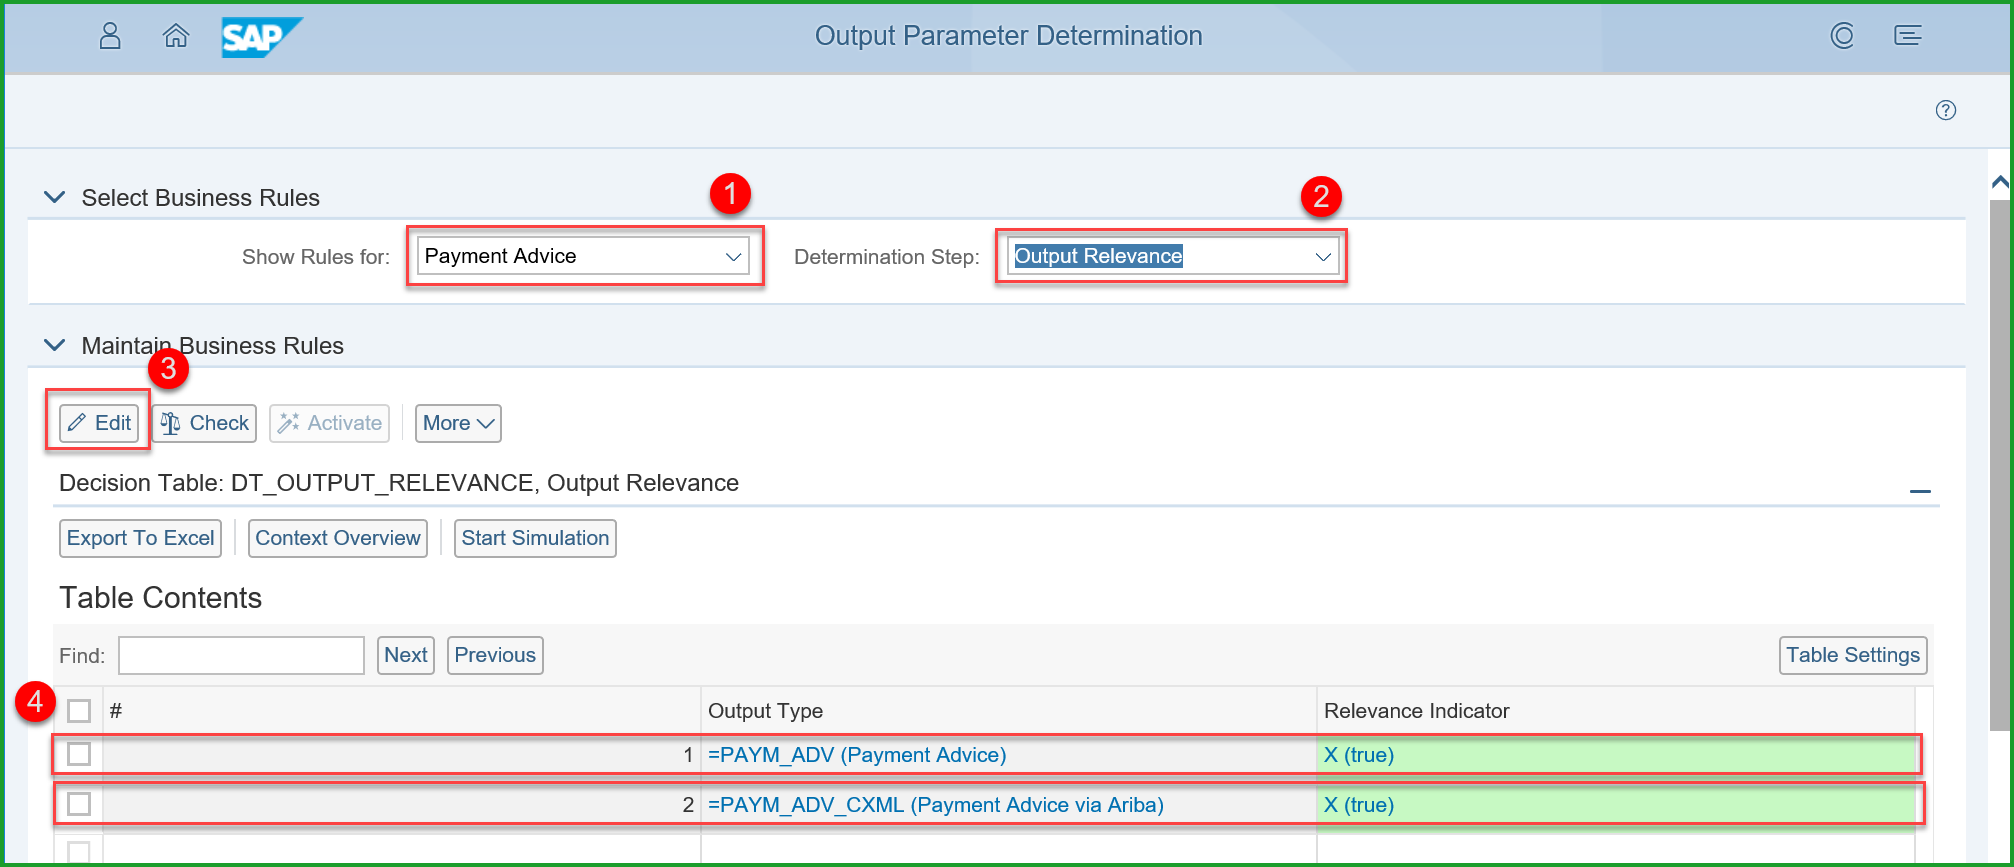 Output Management – Customize Email Form for Payment Advice | SAP Blogs